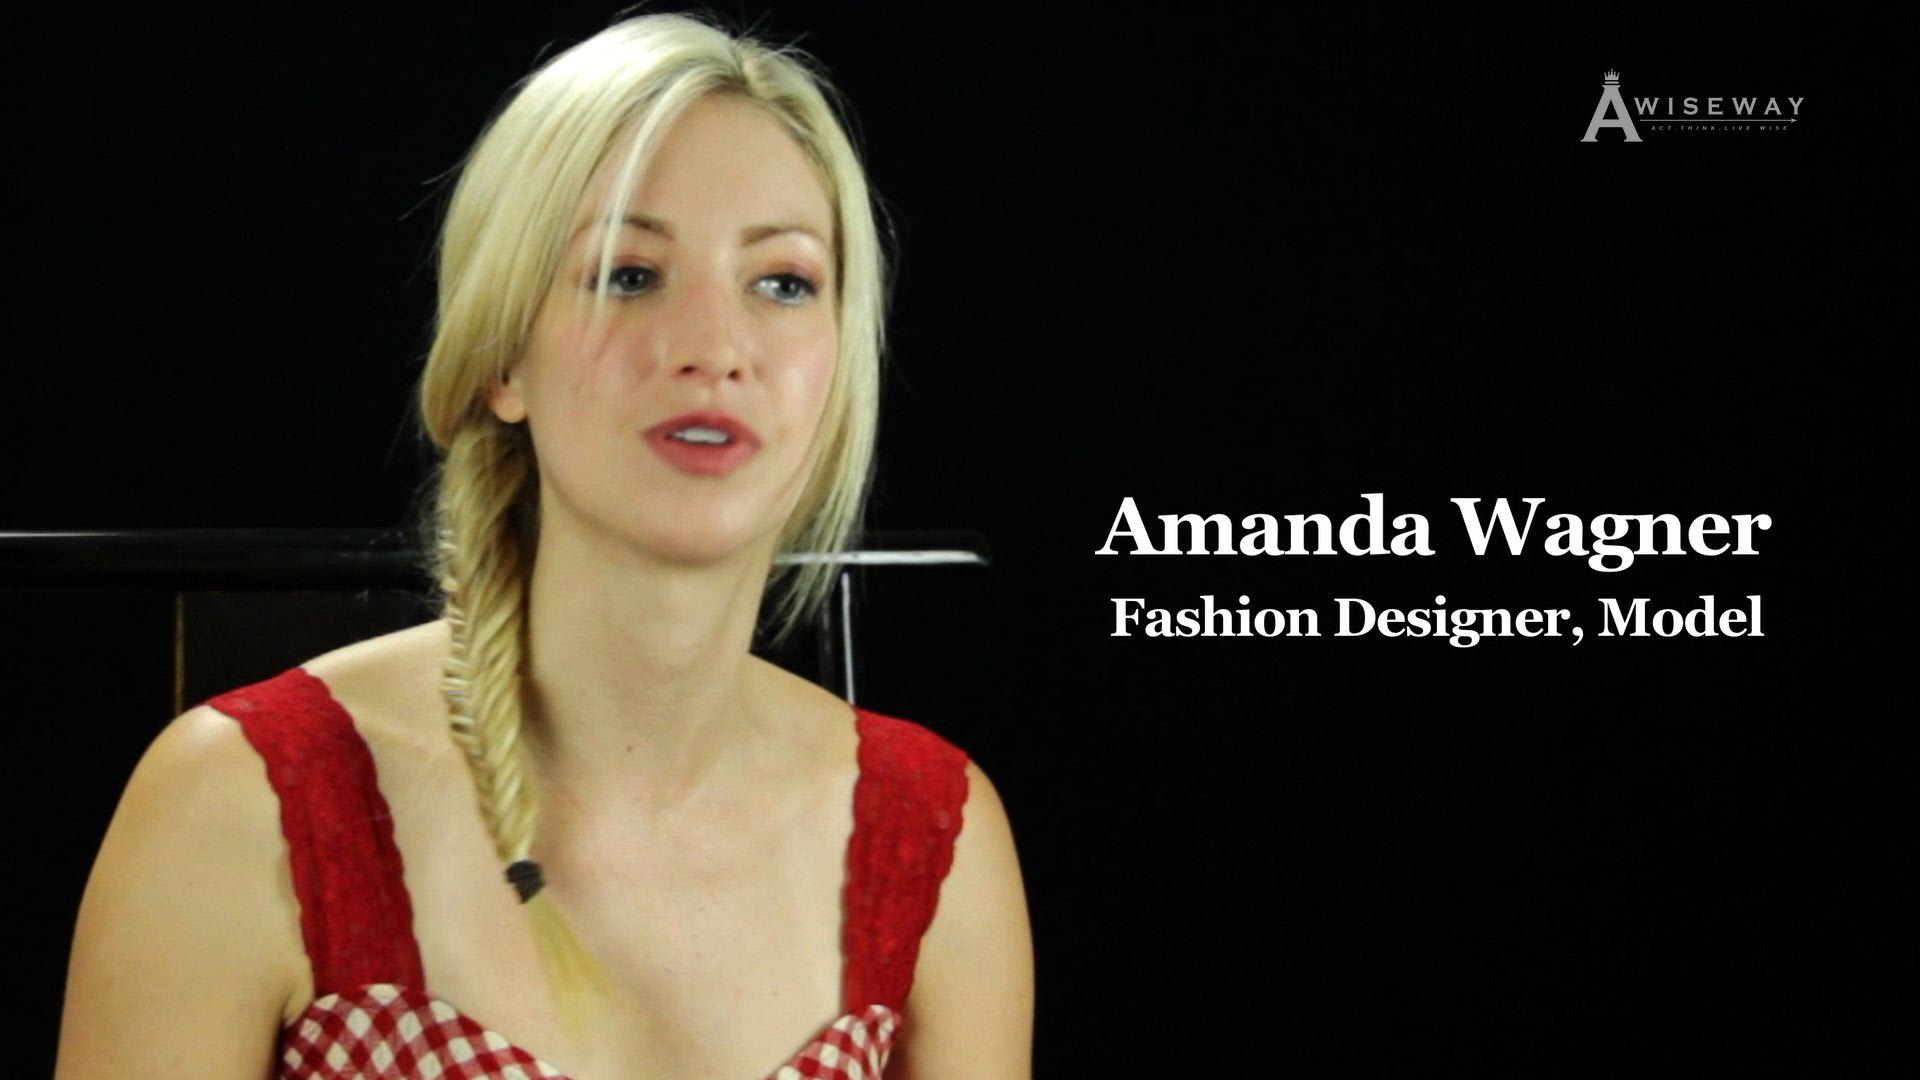 Fashion Designer and Model Says her Drive for Stability Got Her Away from her Creativity